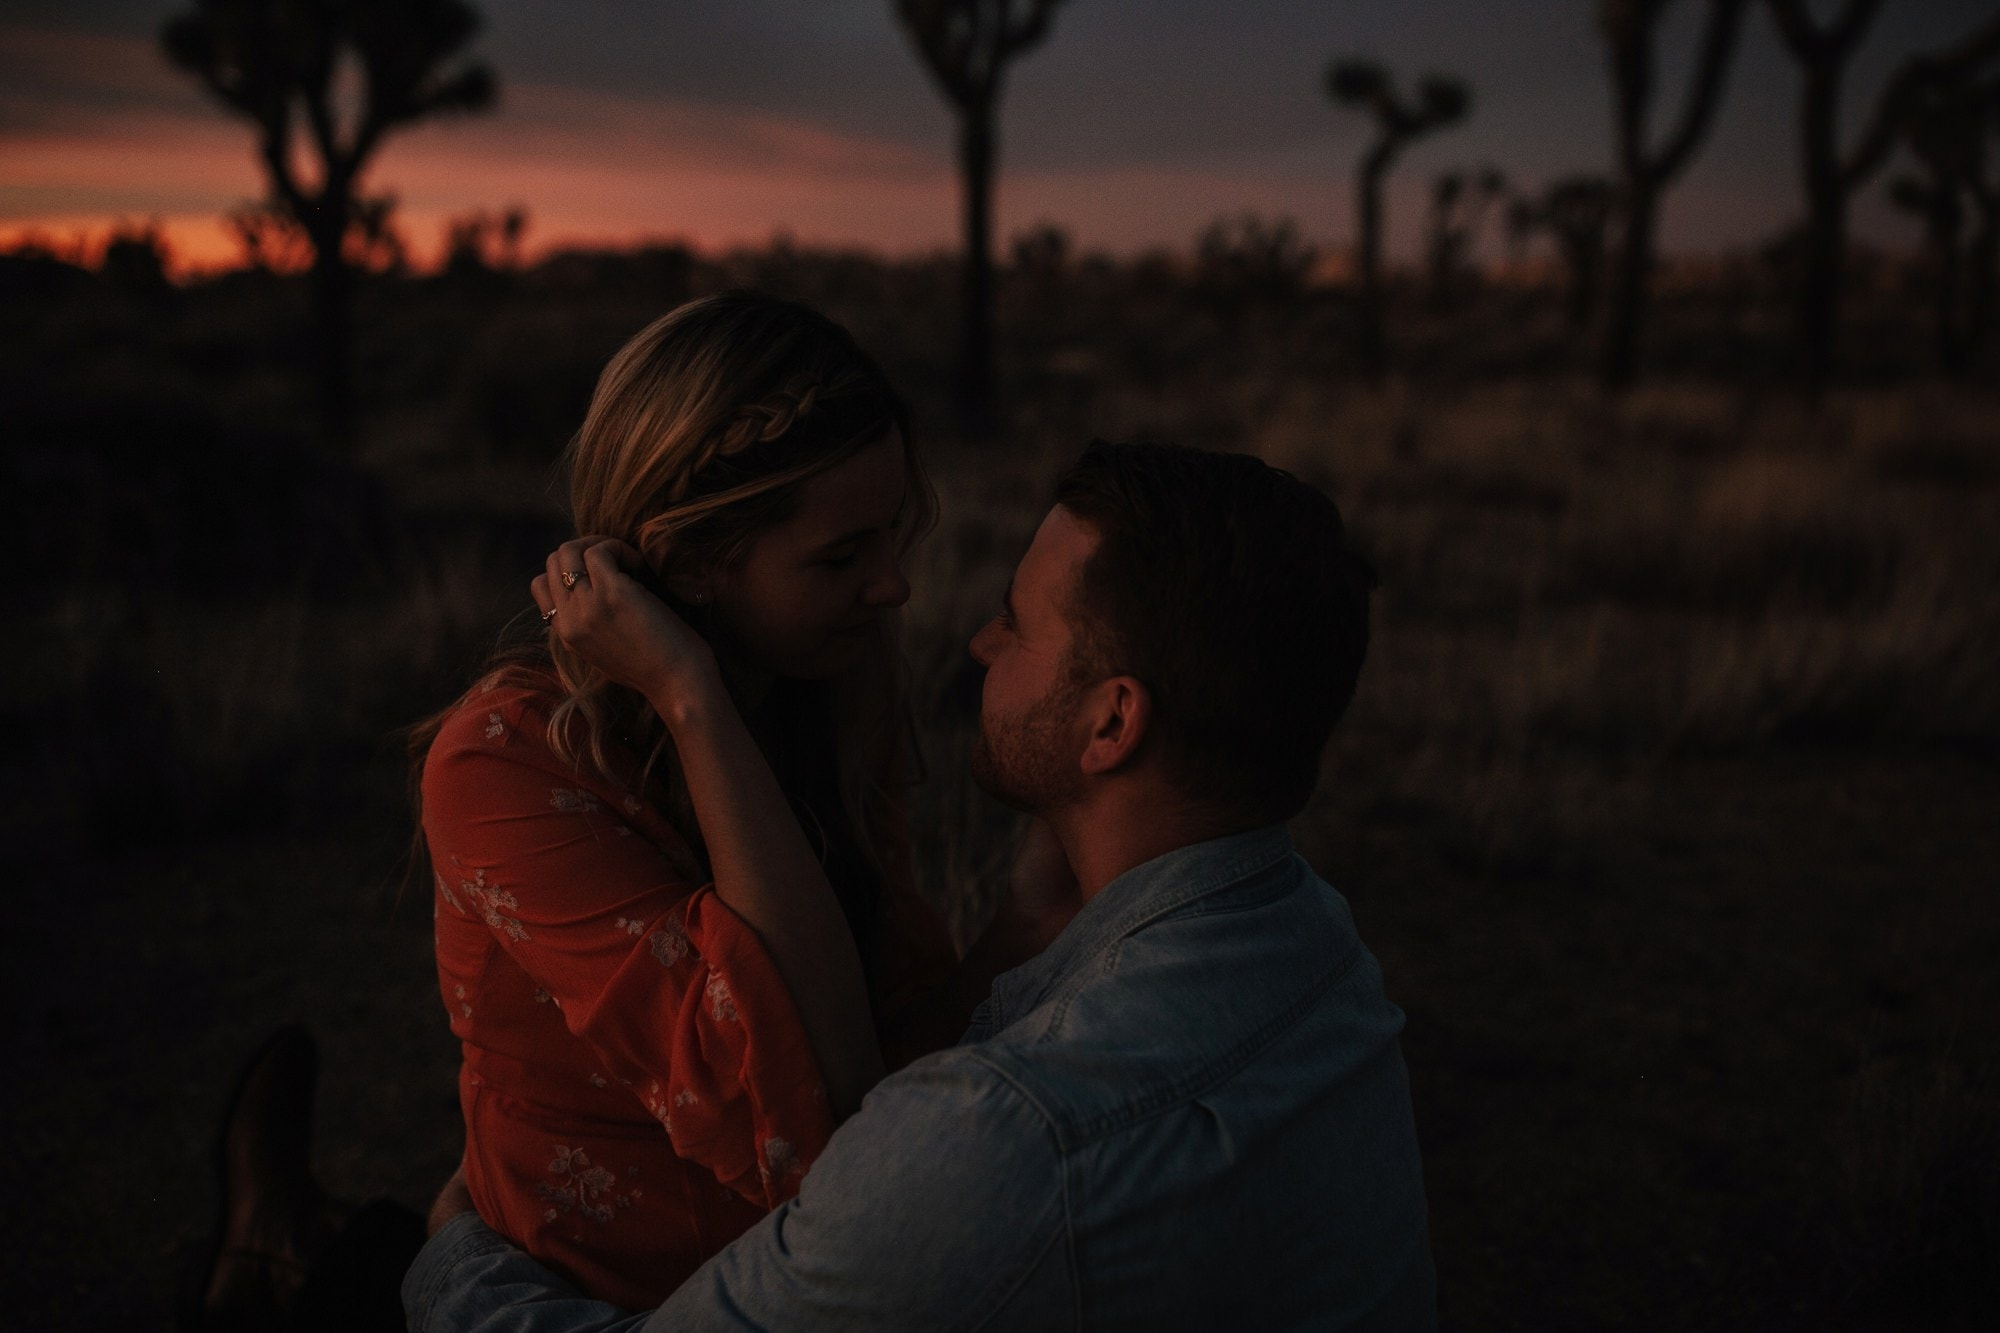 dusk engagement session